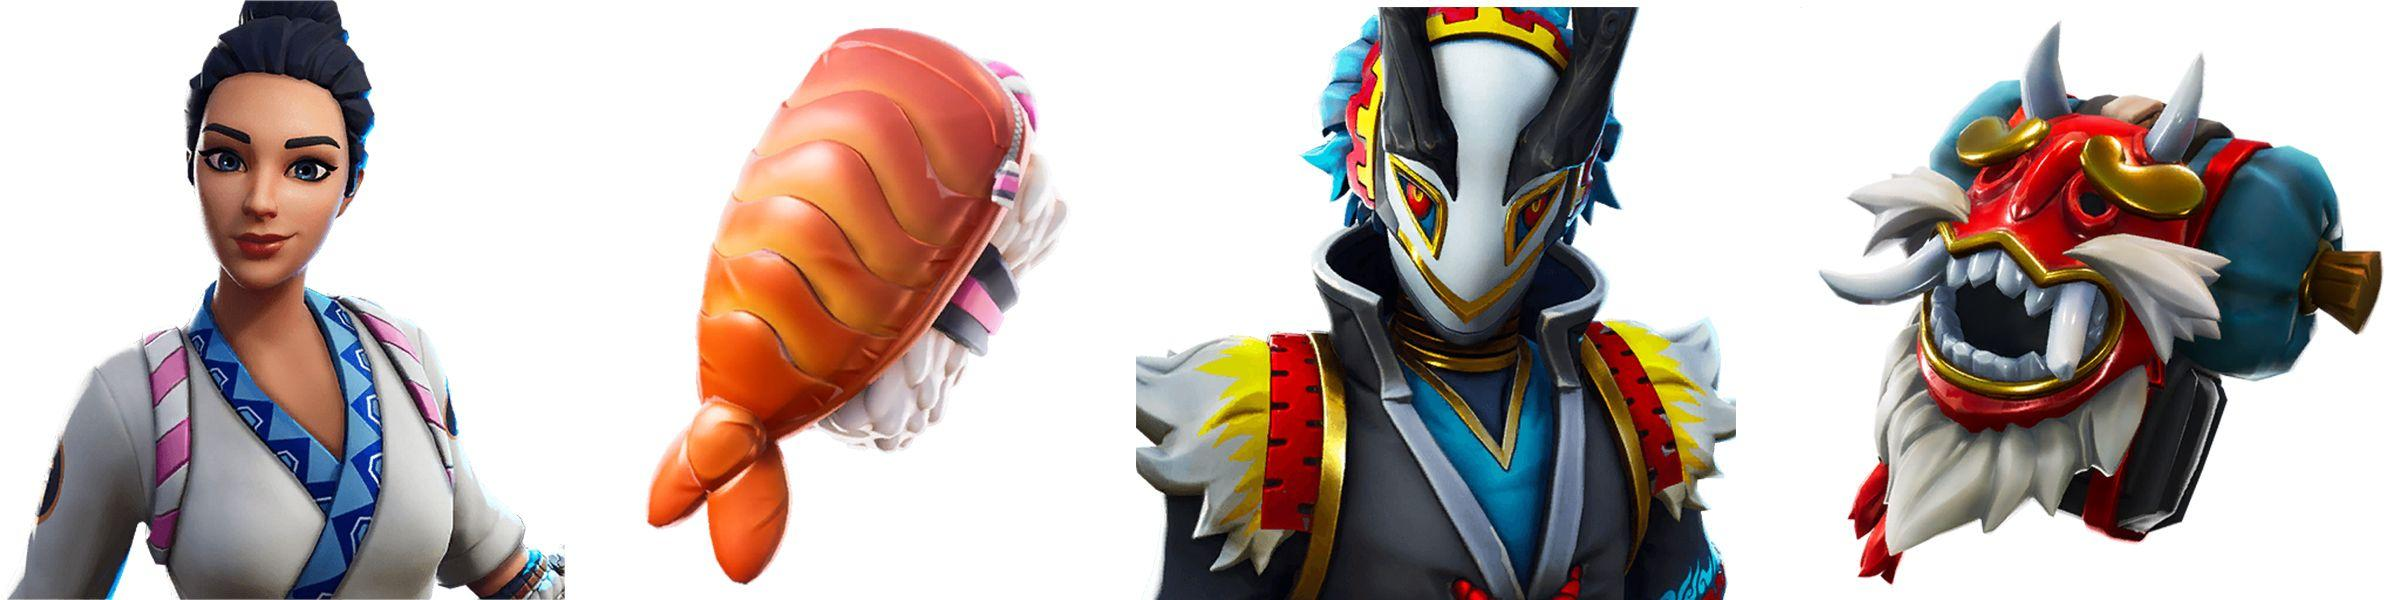 Fortnite's 6.30 cosmetics leak reveals upcoming mage sets